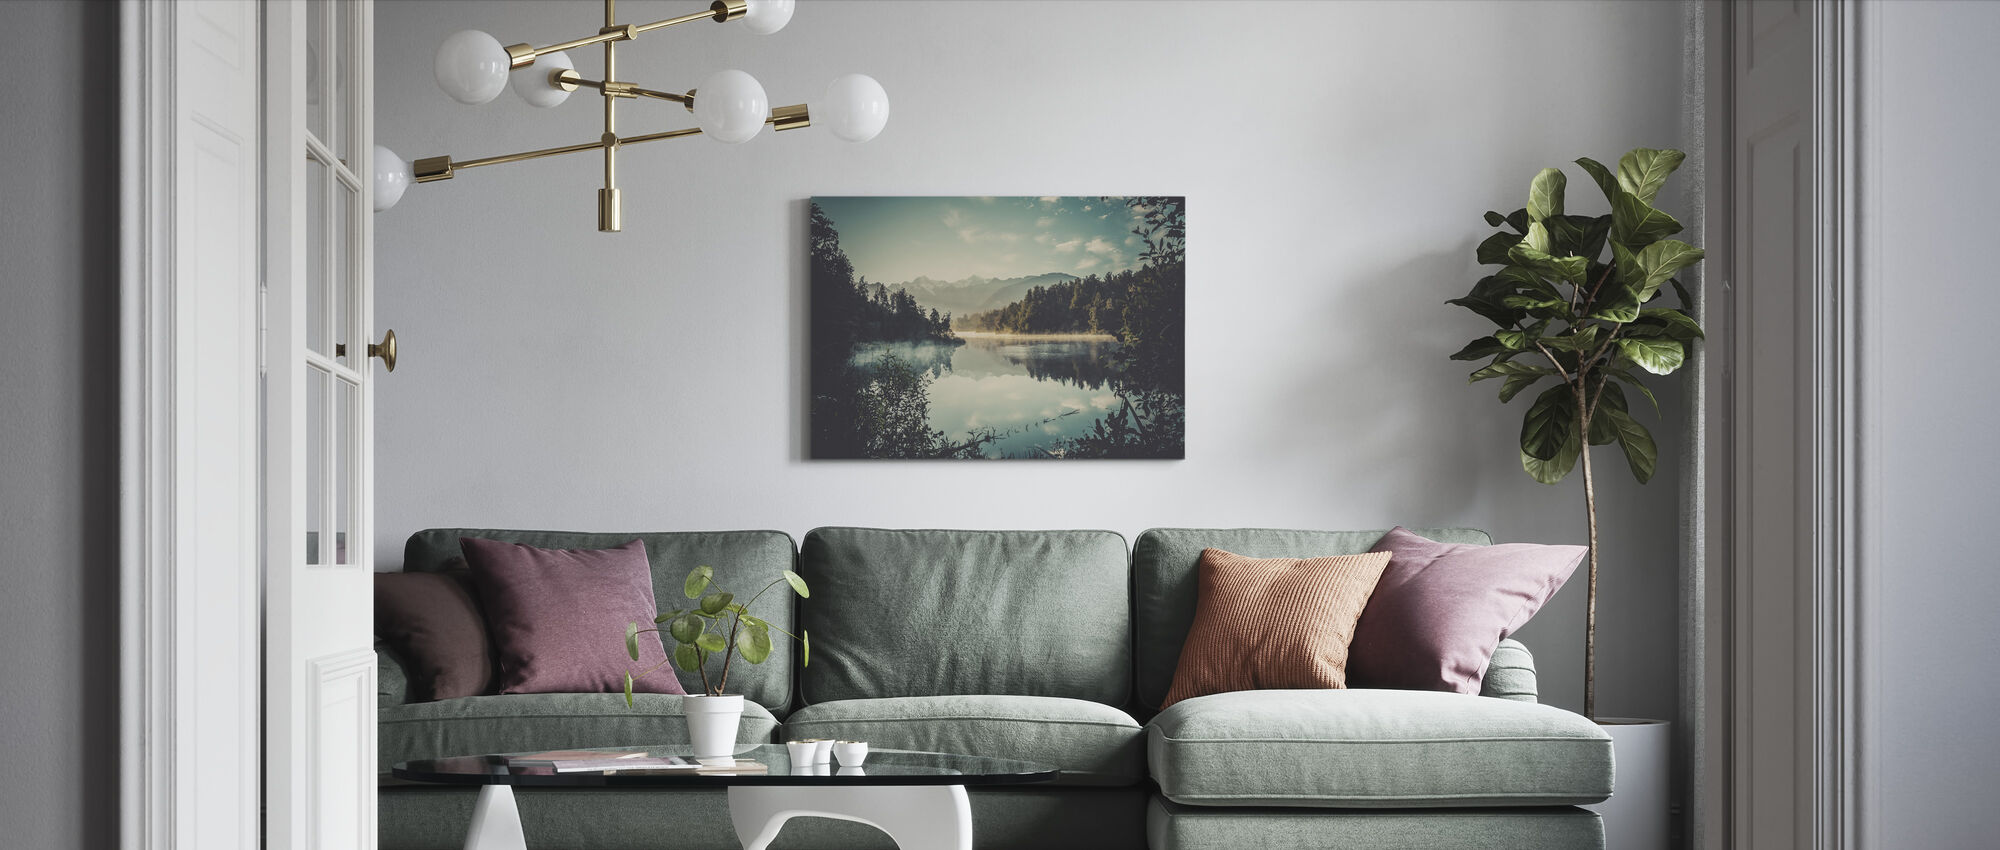 Travel Memories - Canvas print - Living Room